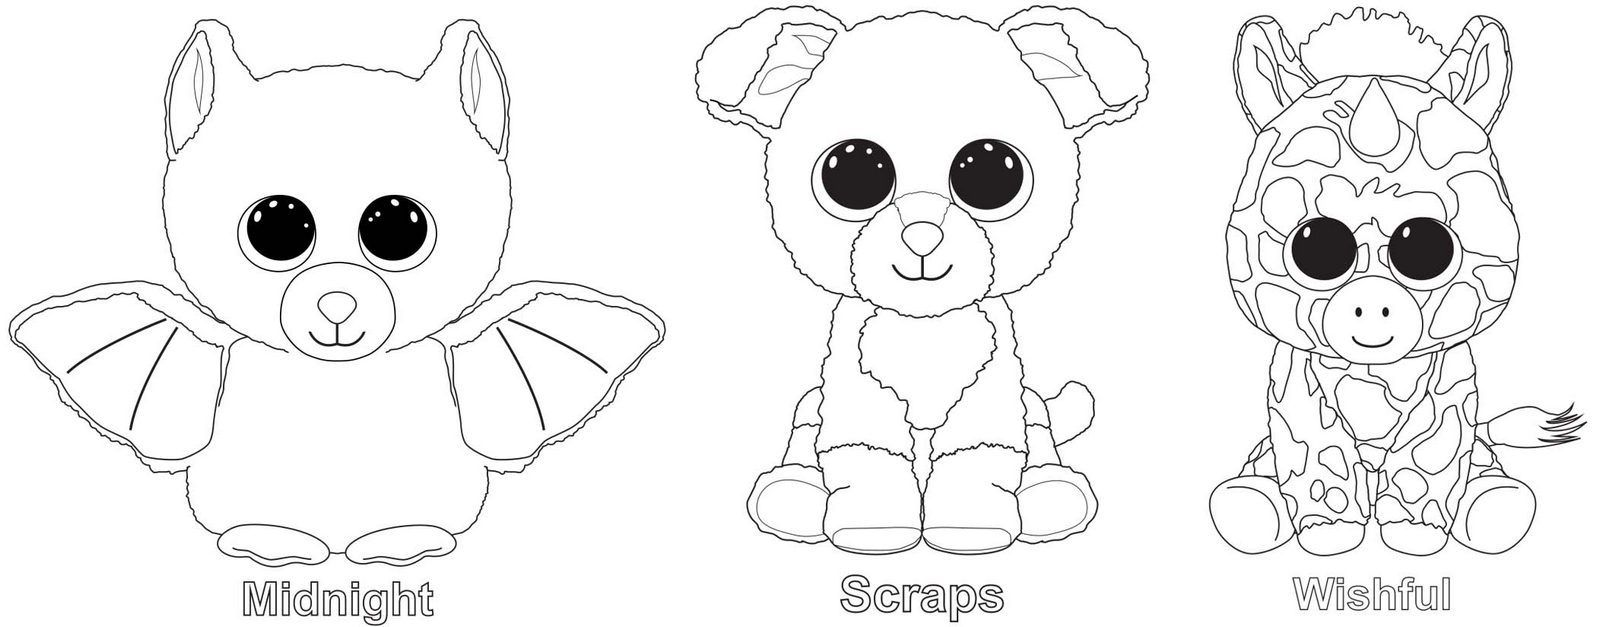 - Midnight Scraps Wishful From Beanie Boo Coloring Page Teddy Bear